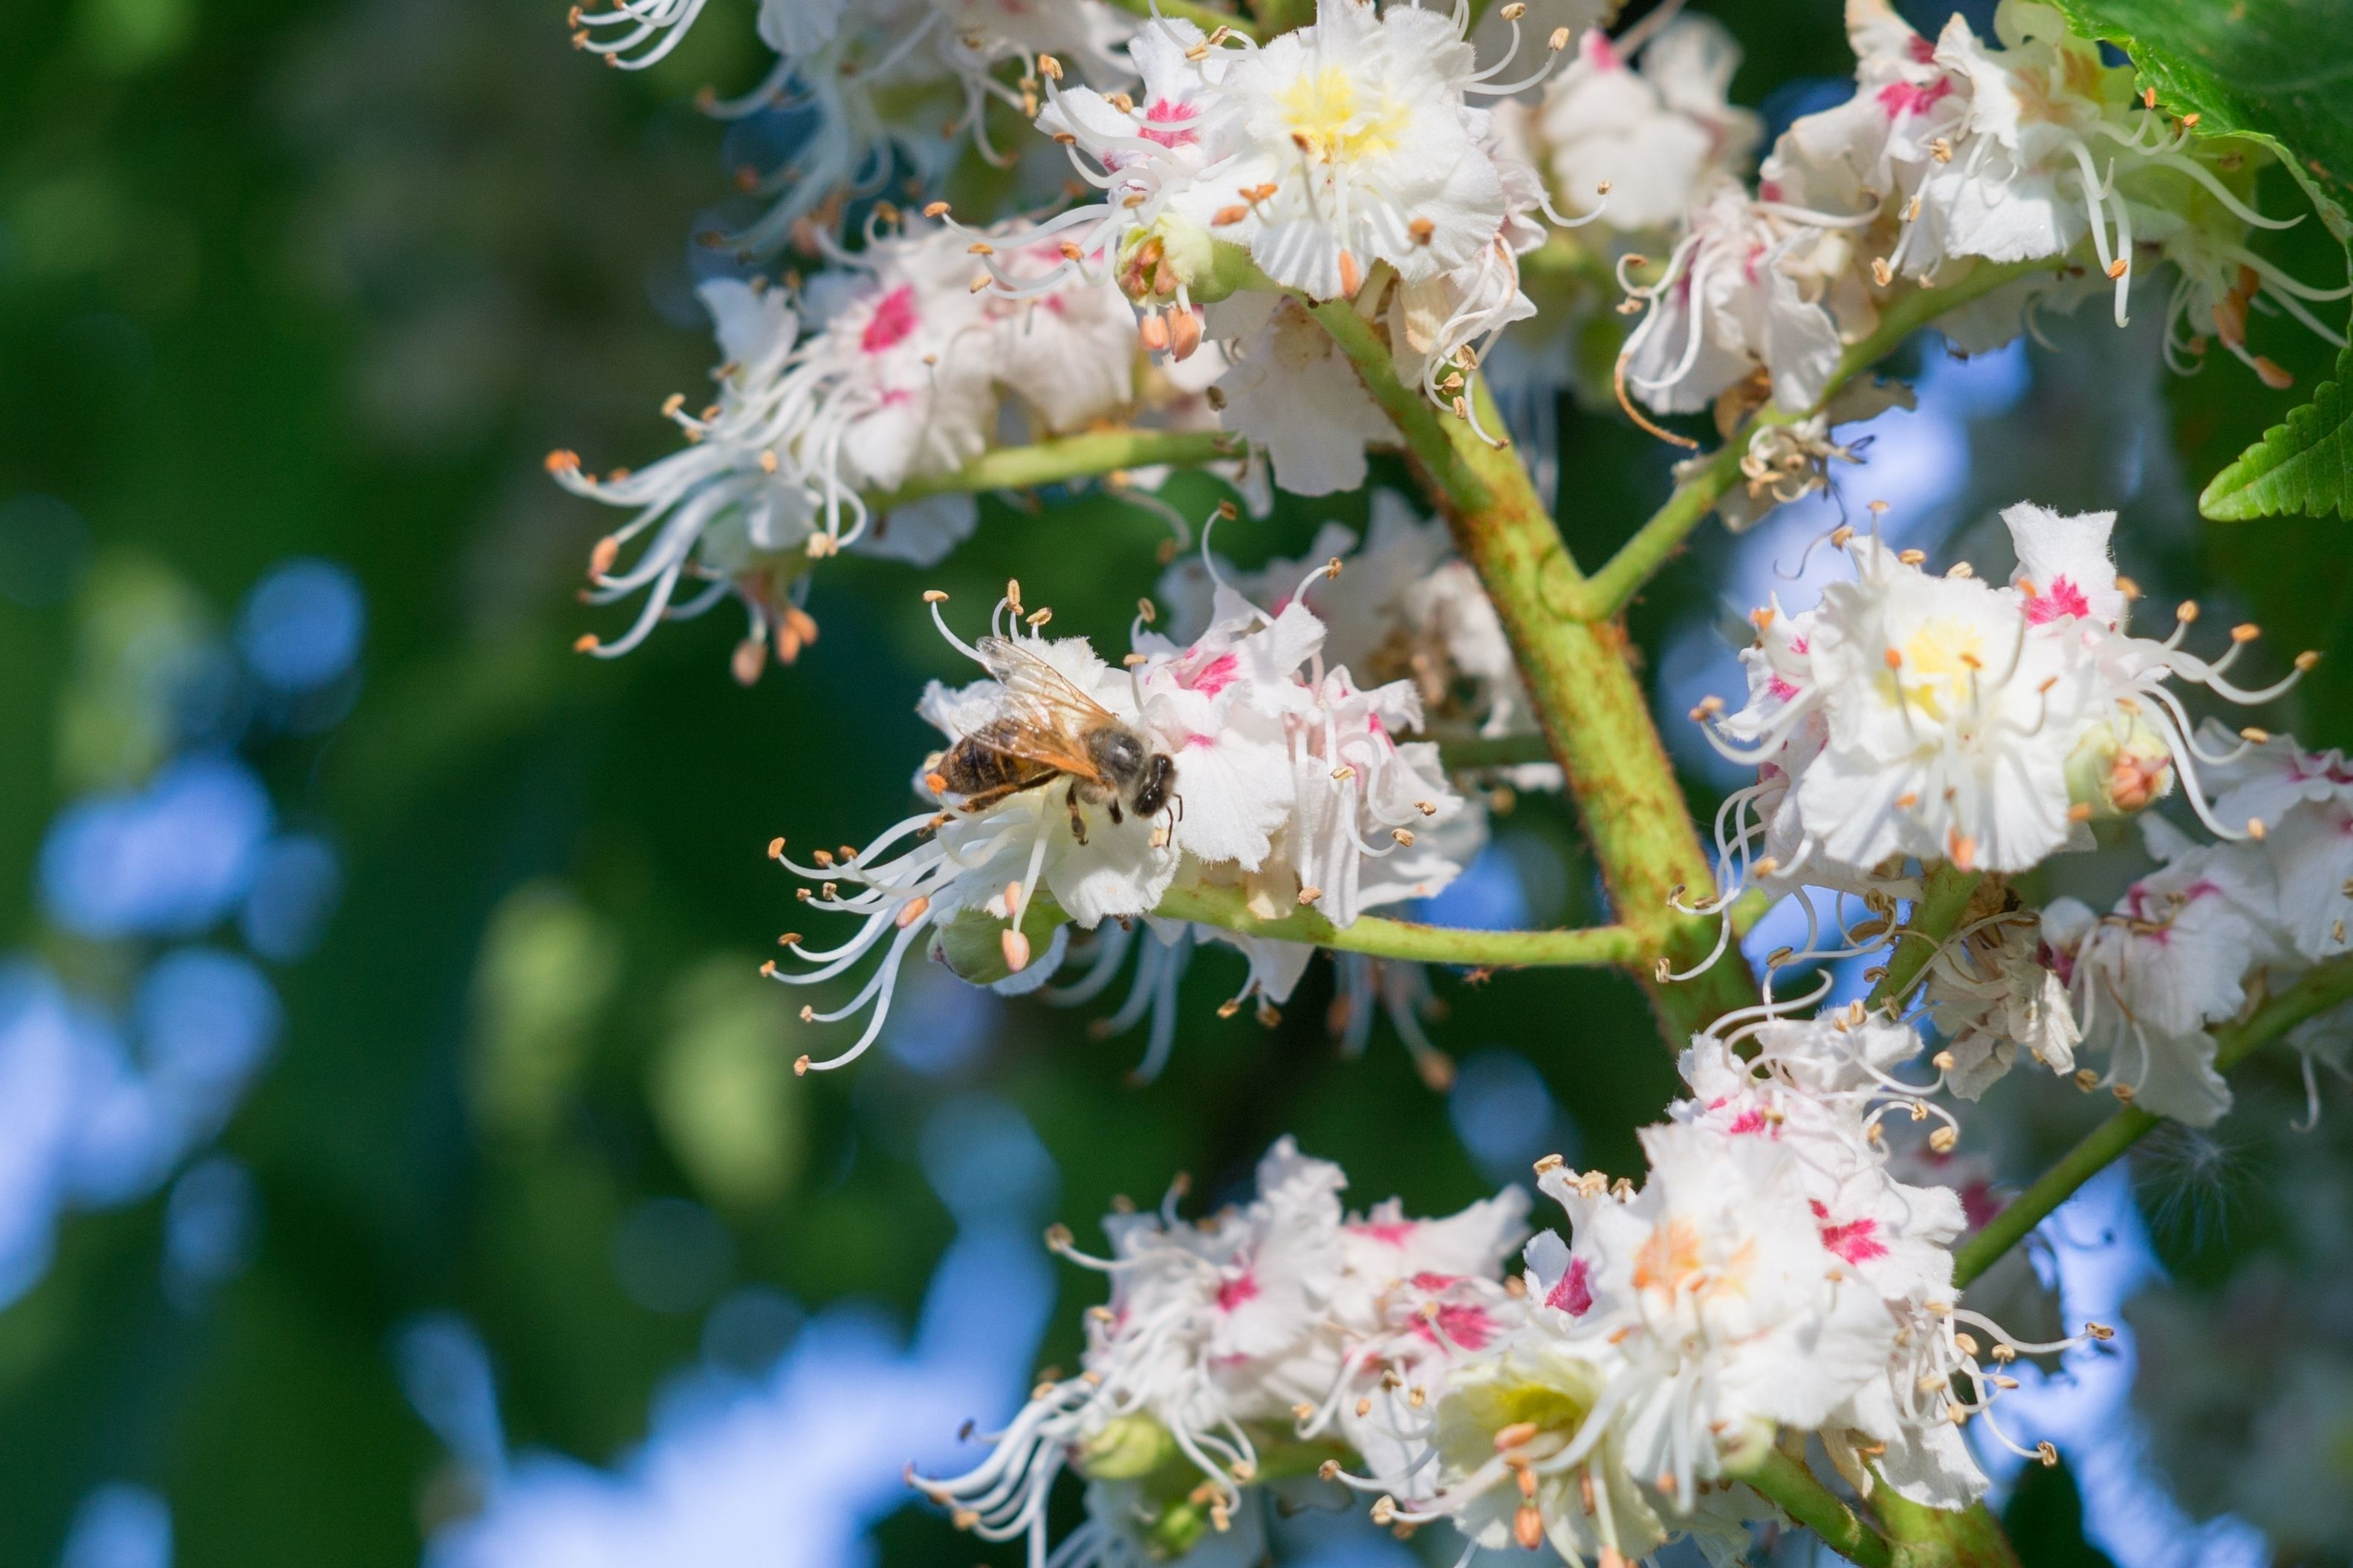 A close up photograph of blossom on a tree, with a bee on one of the flowers